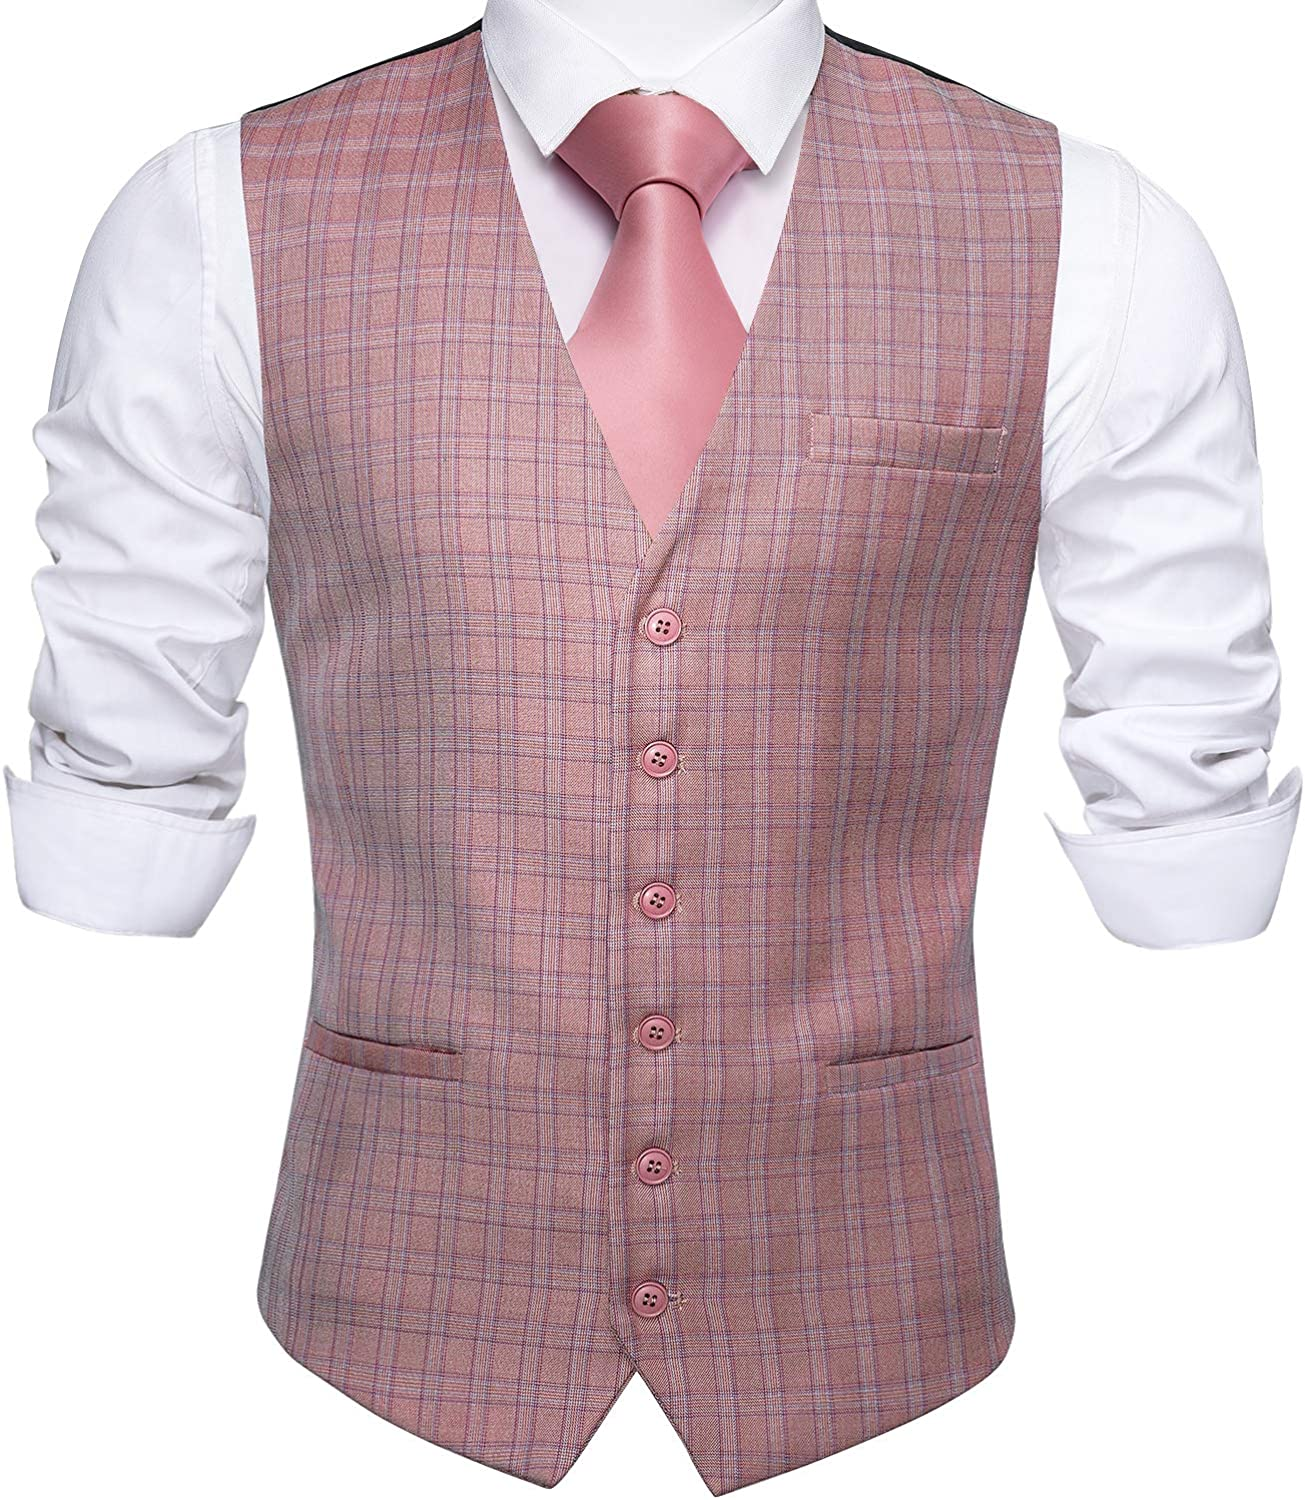 Barry.Wang Mens Plaid Waistcoat Wool Blend Tailored Collar/V-neck 3 Pocket Check Vest Formal/Leisure